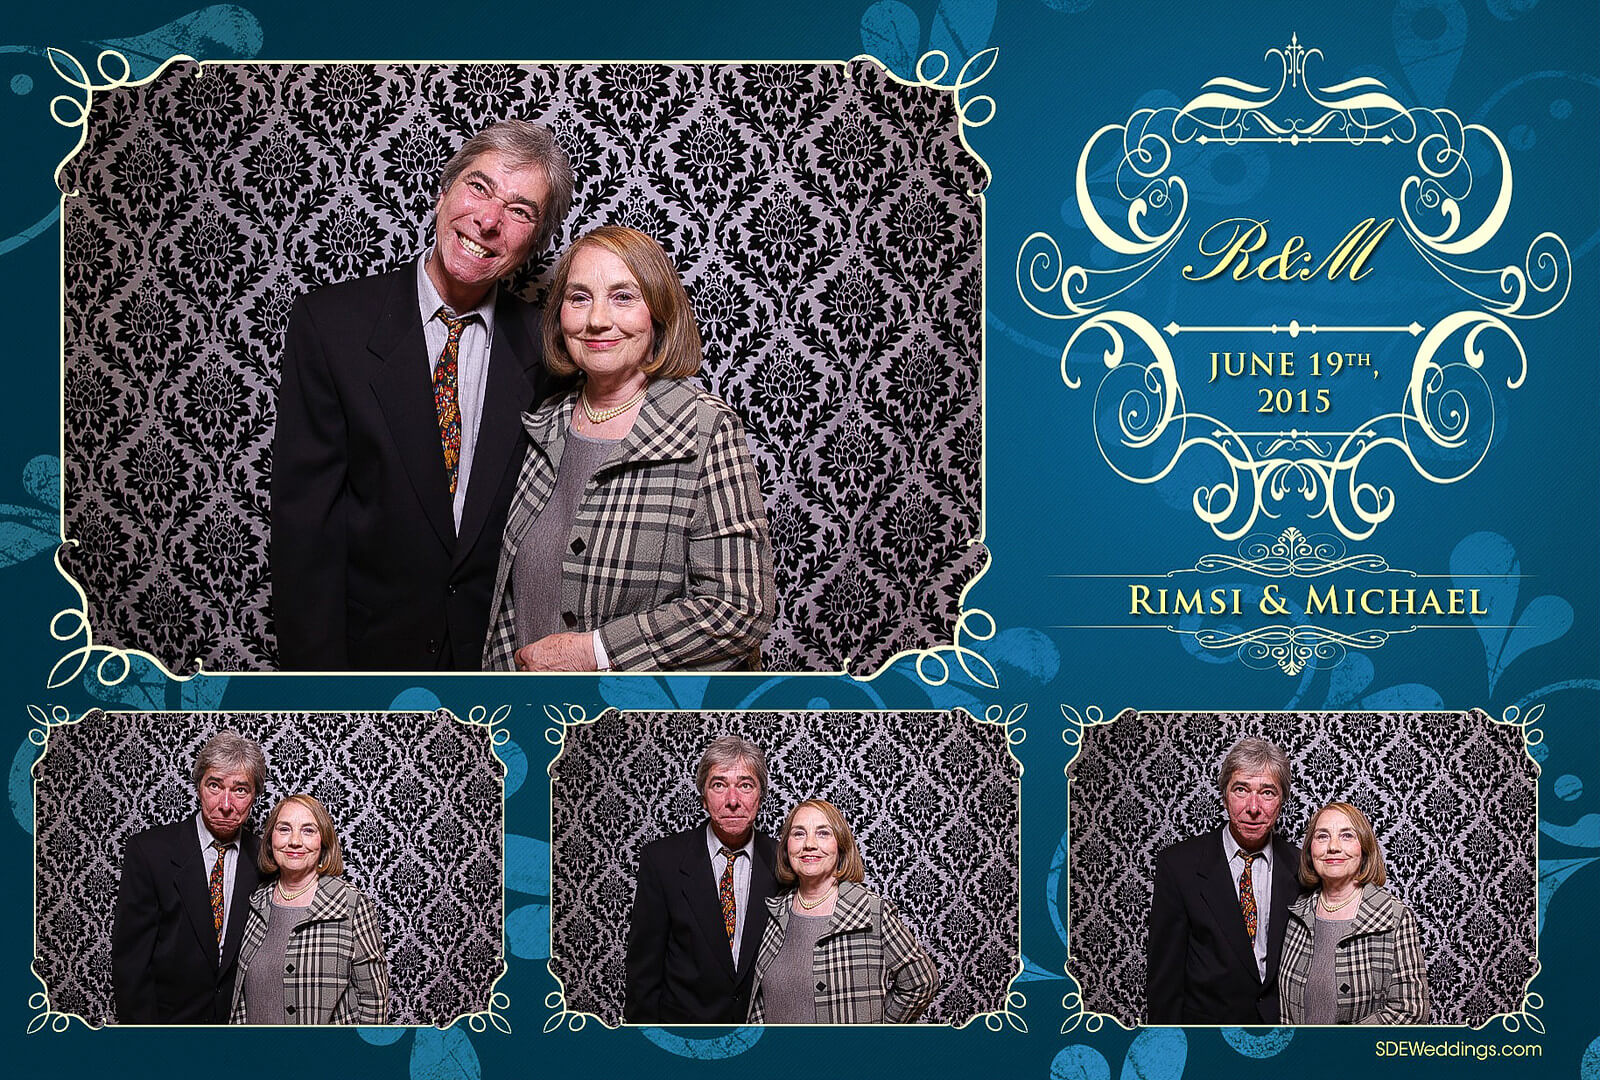 Toronto Italian Borgata Wedding Photo Booth Rental 7